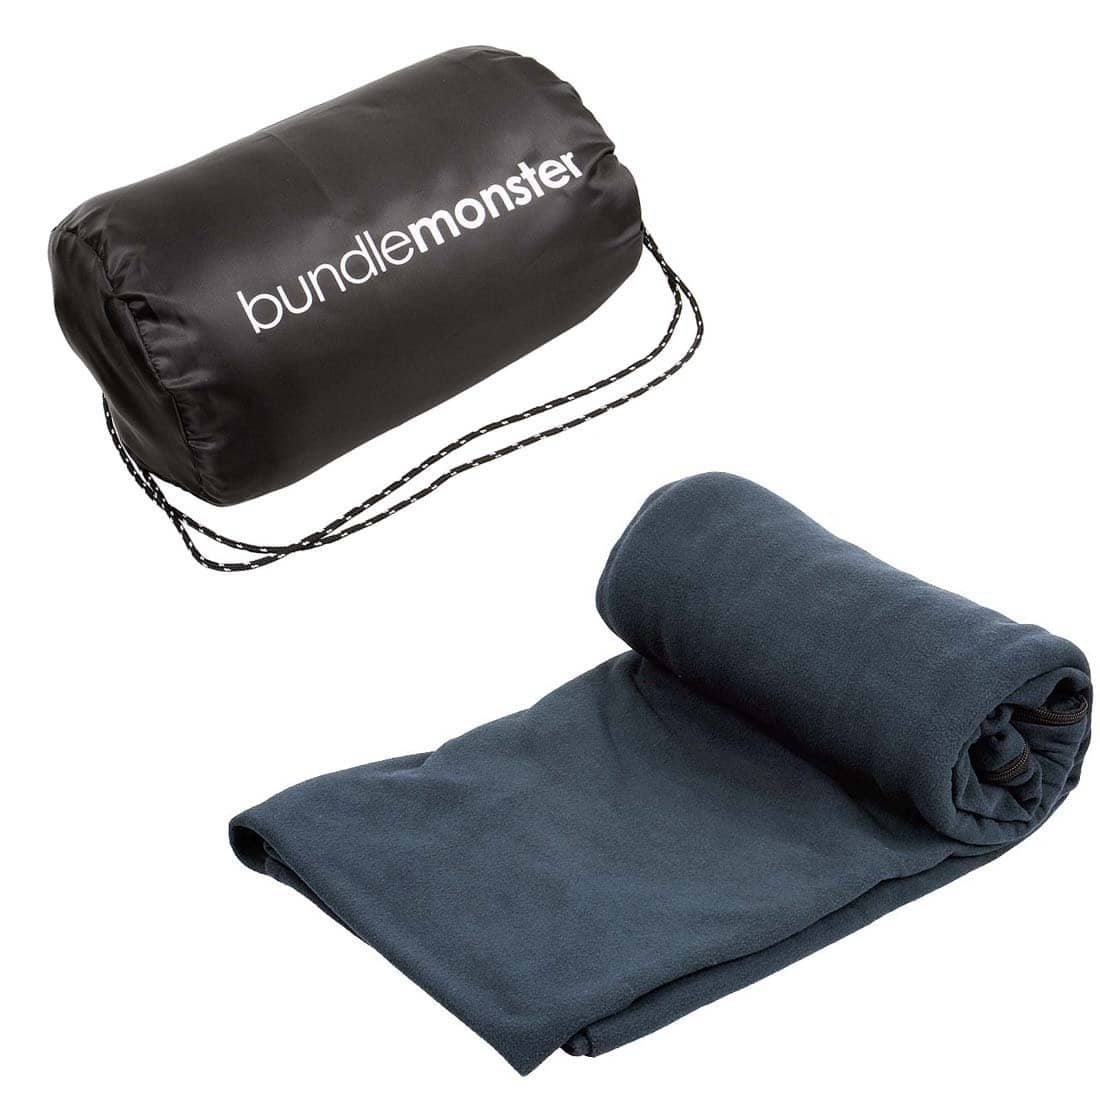 Bundle Monster Warm Cozy Multicolor Microfiber Fleece Adult Sleeping Bag Liner [Dark Gray] -- 50% OFF - $11.40